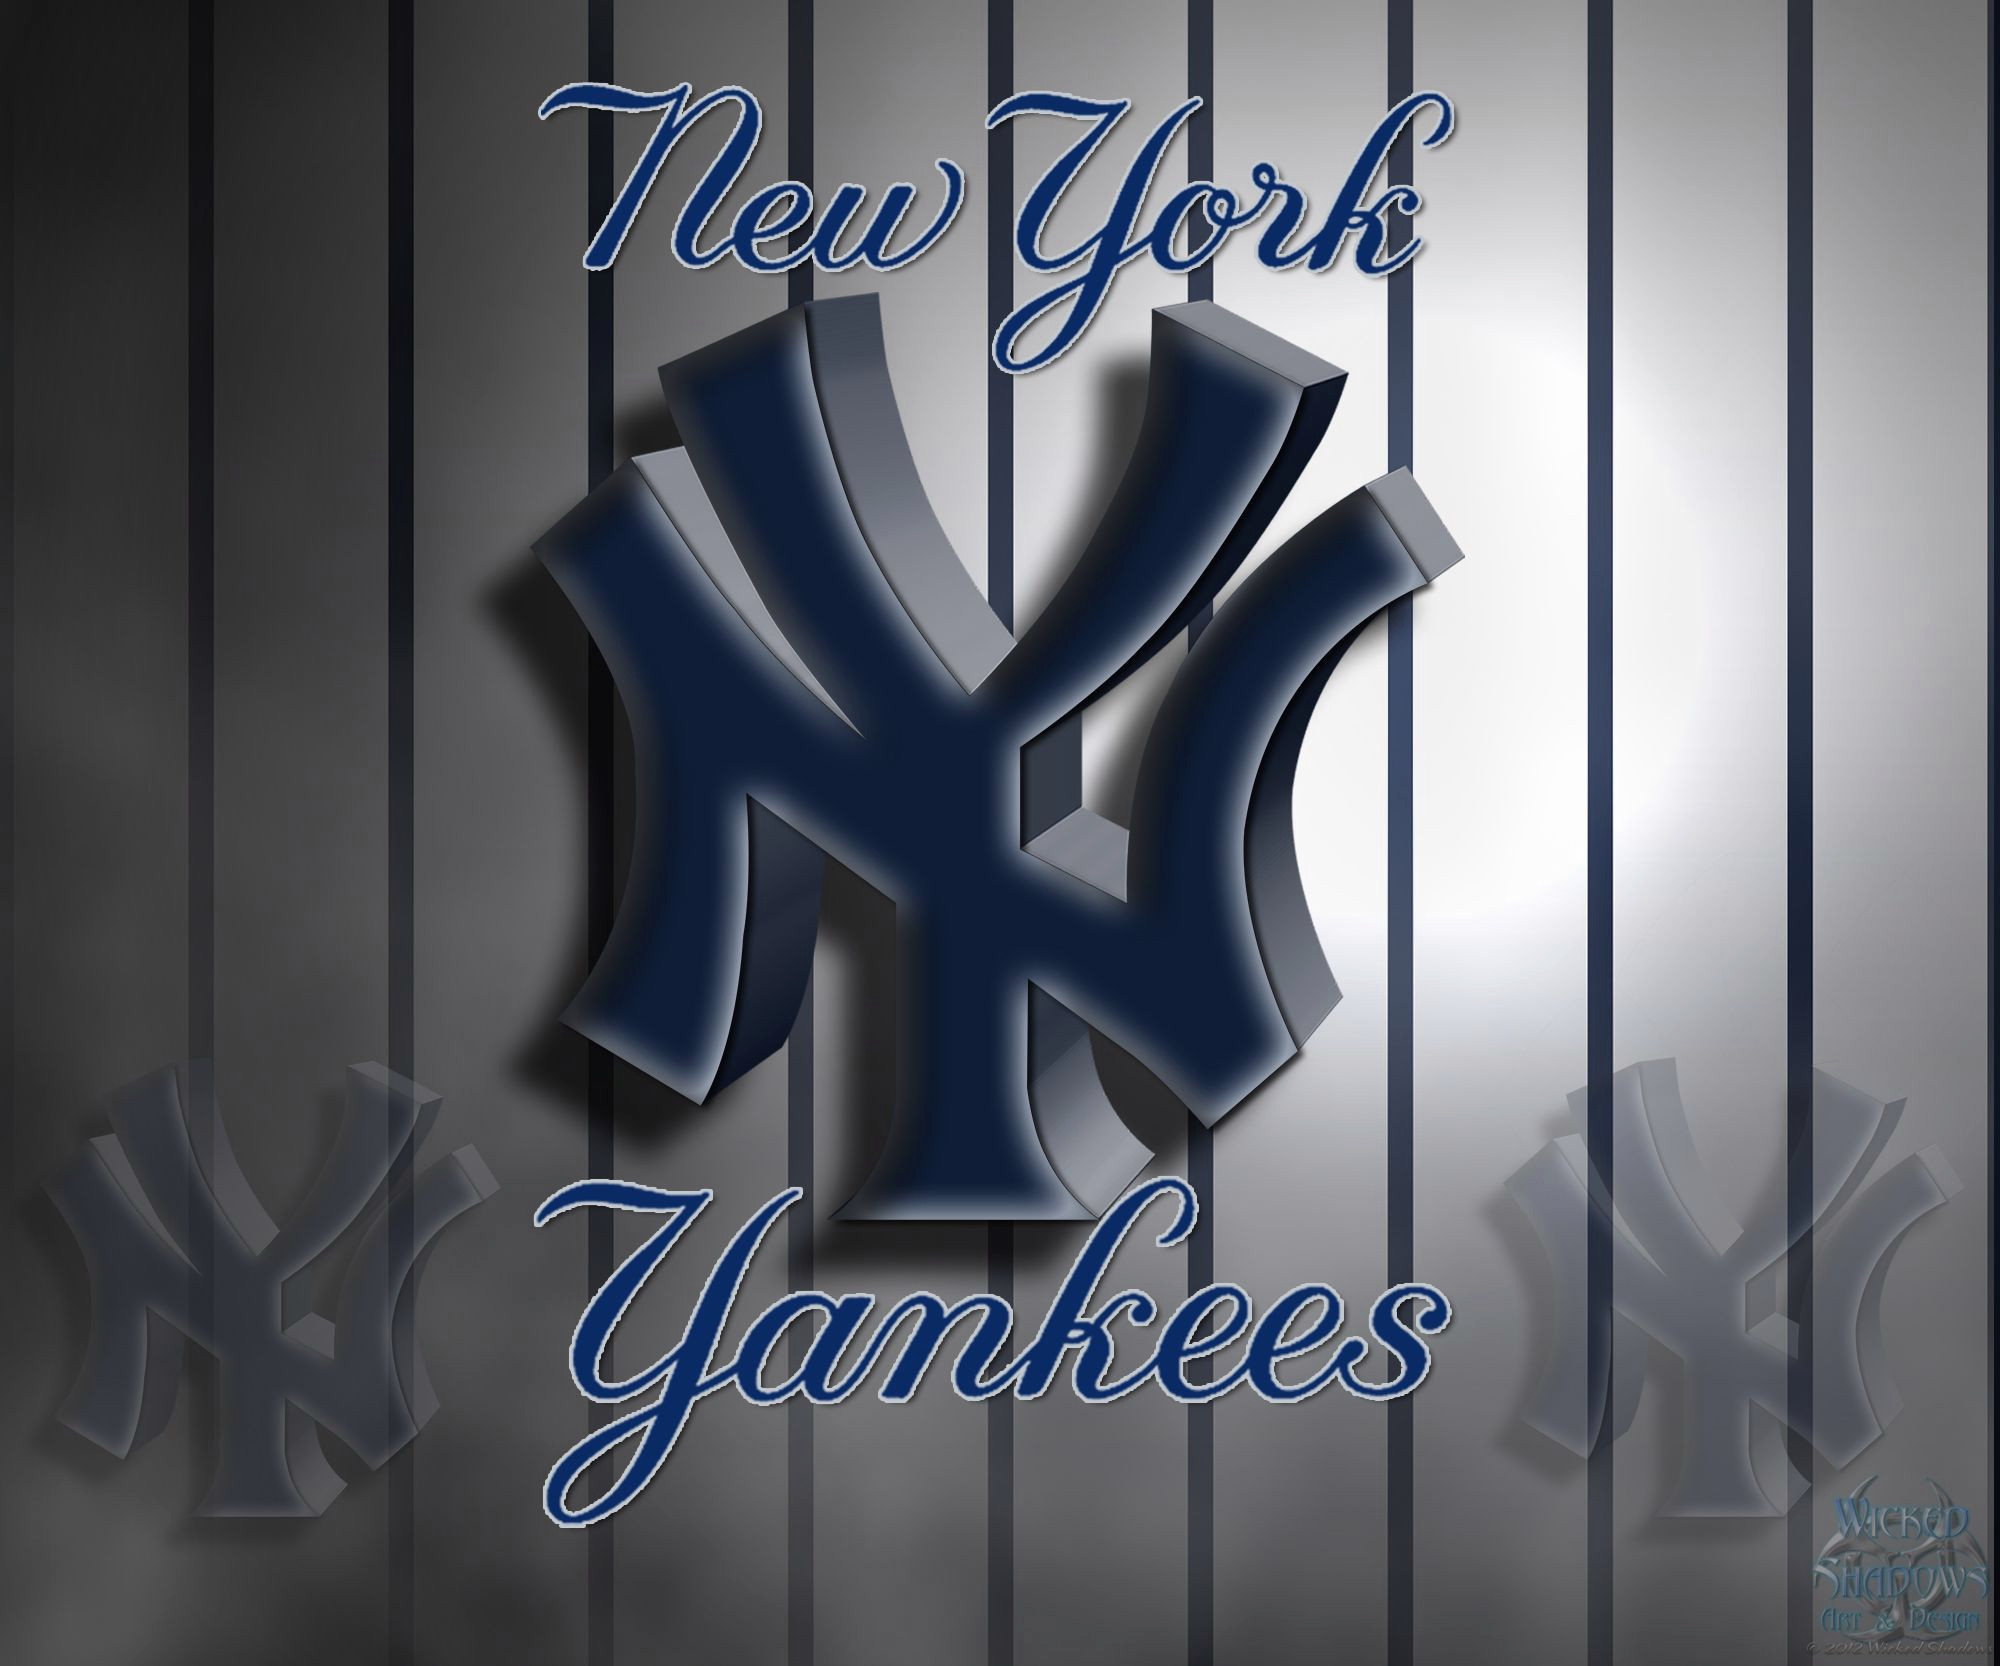 1920x1200 New York Yankee Wallpaper Widescreen High Resolution For Mobile Hd Yankees